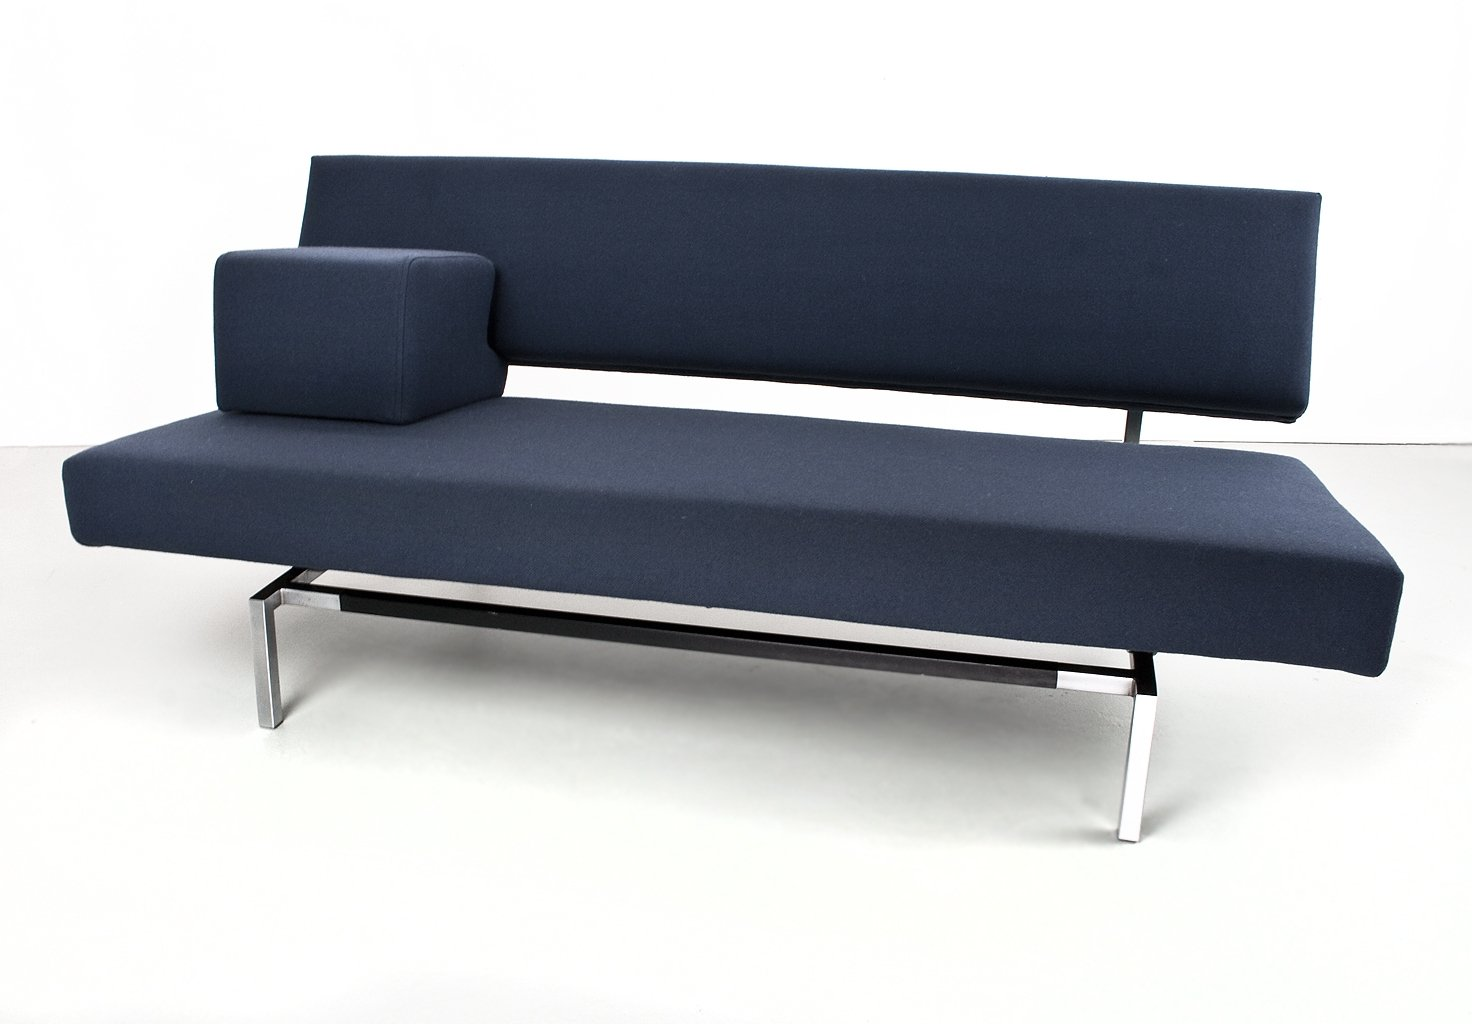 Sofa design gebraucht  Martin Visser - 70 vintage design items